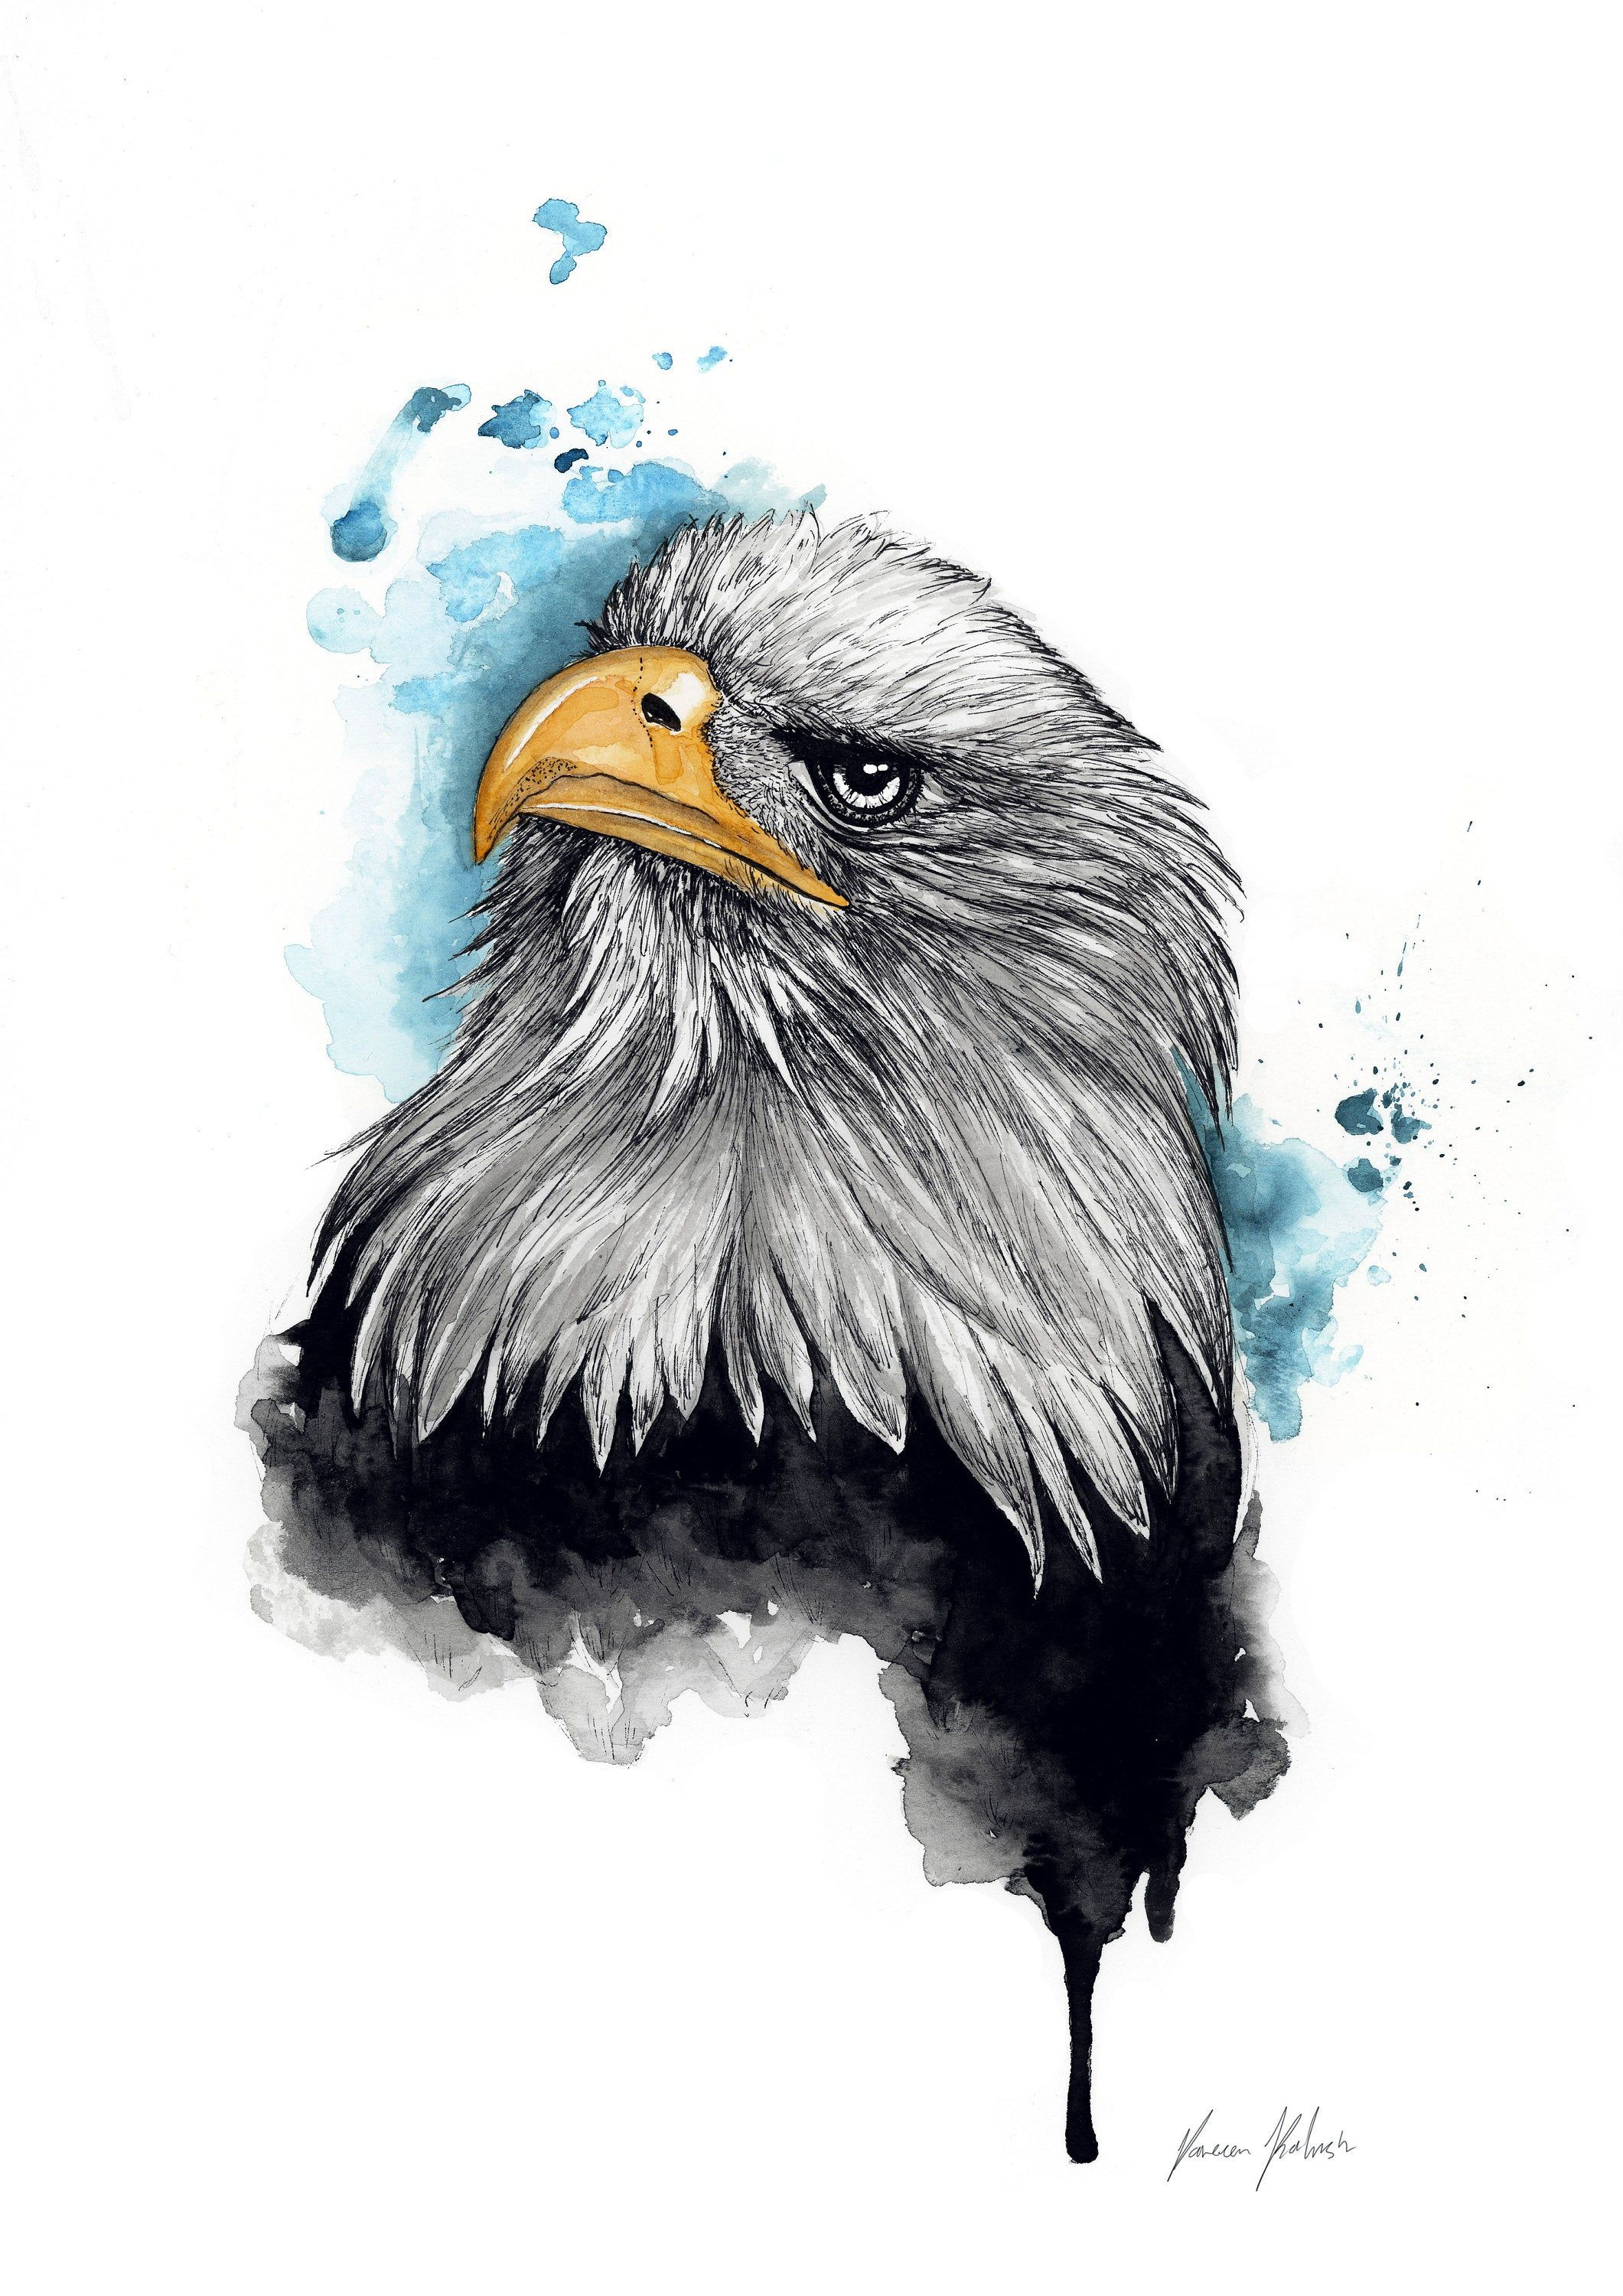 Unique Bald Eagle Wall Art For Home Decor Modern And Minimalist